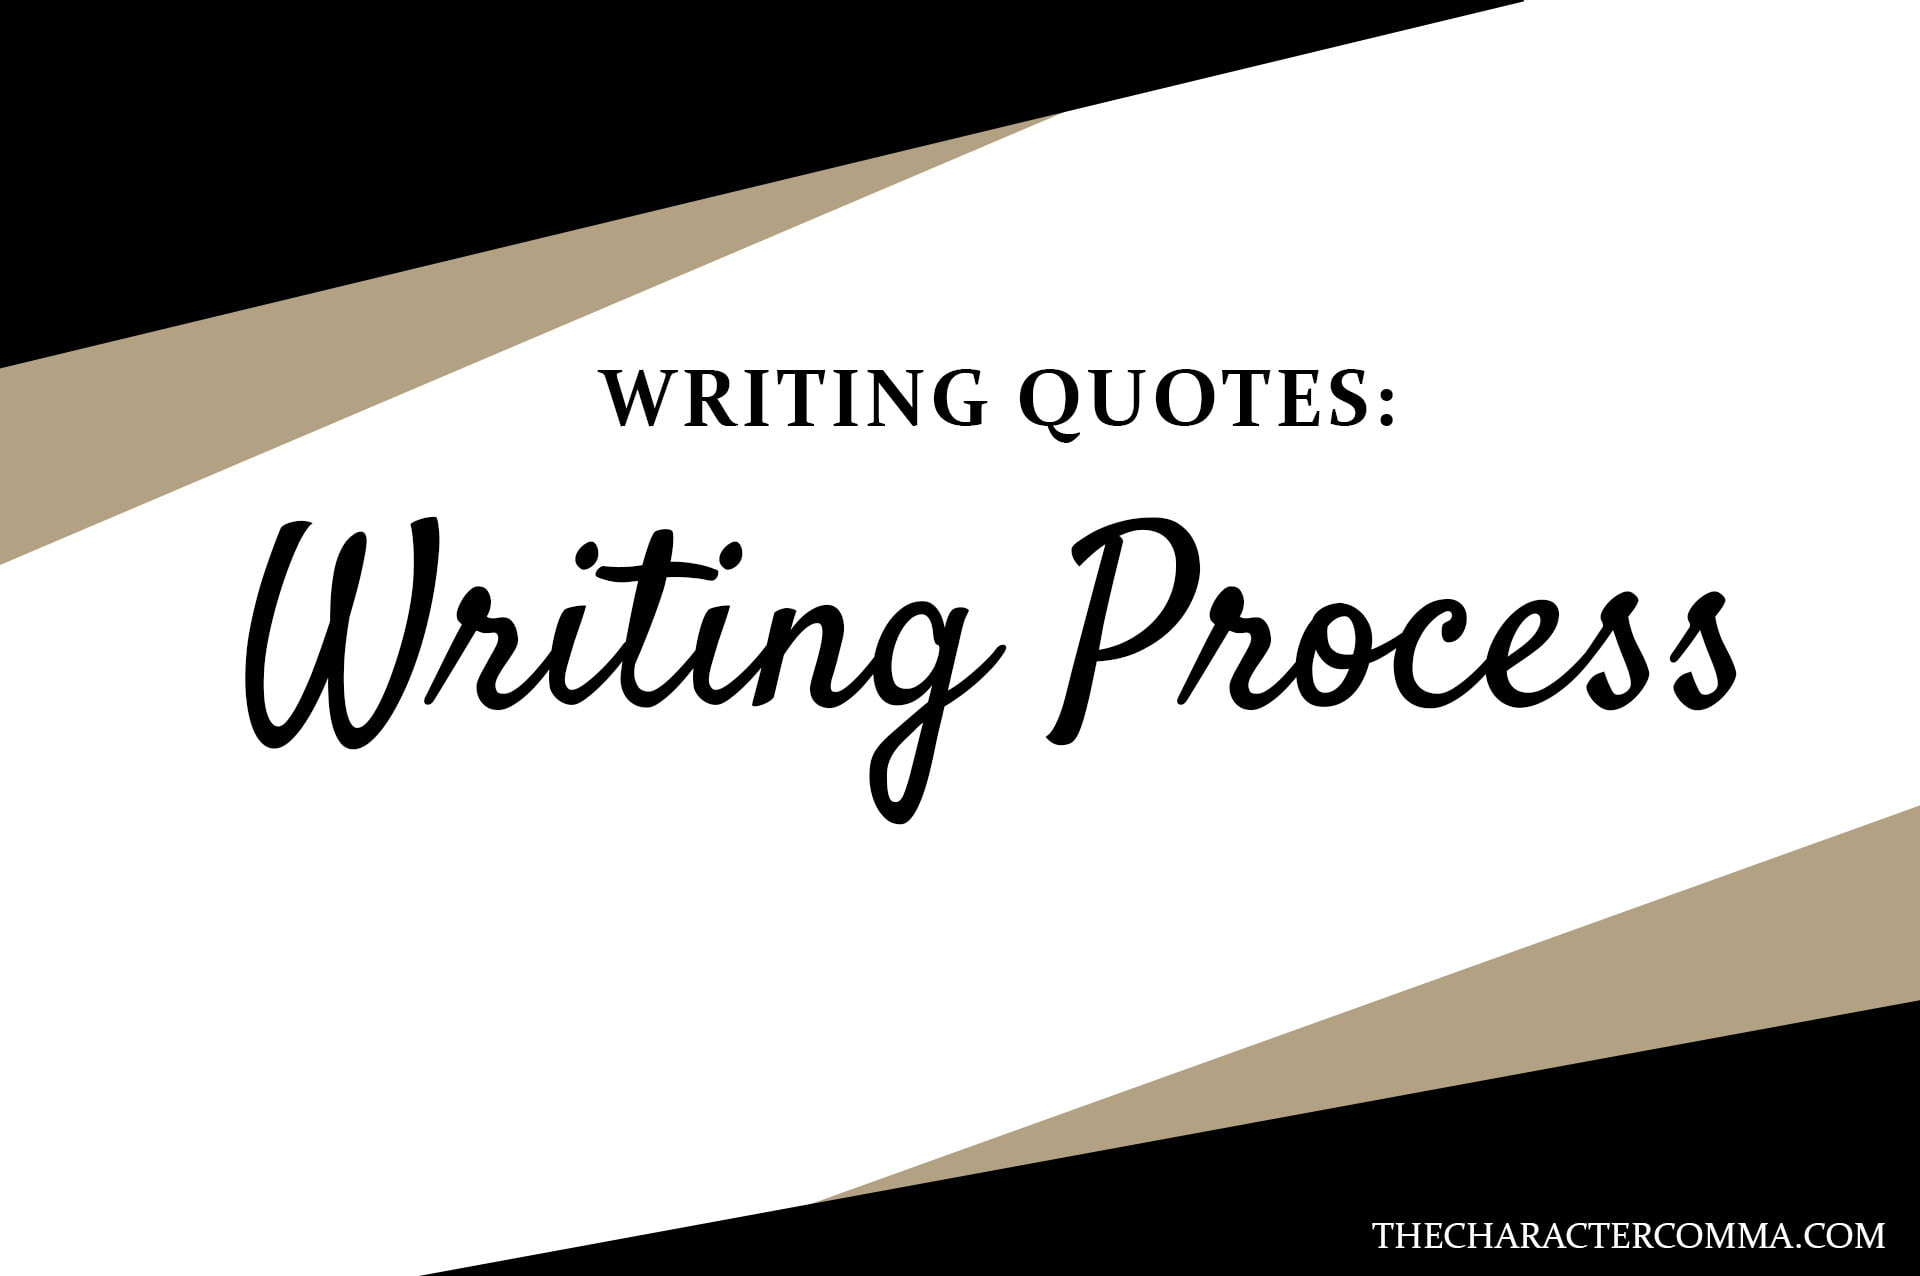 writing quotes - the character comma